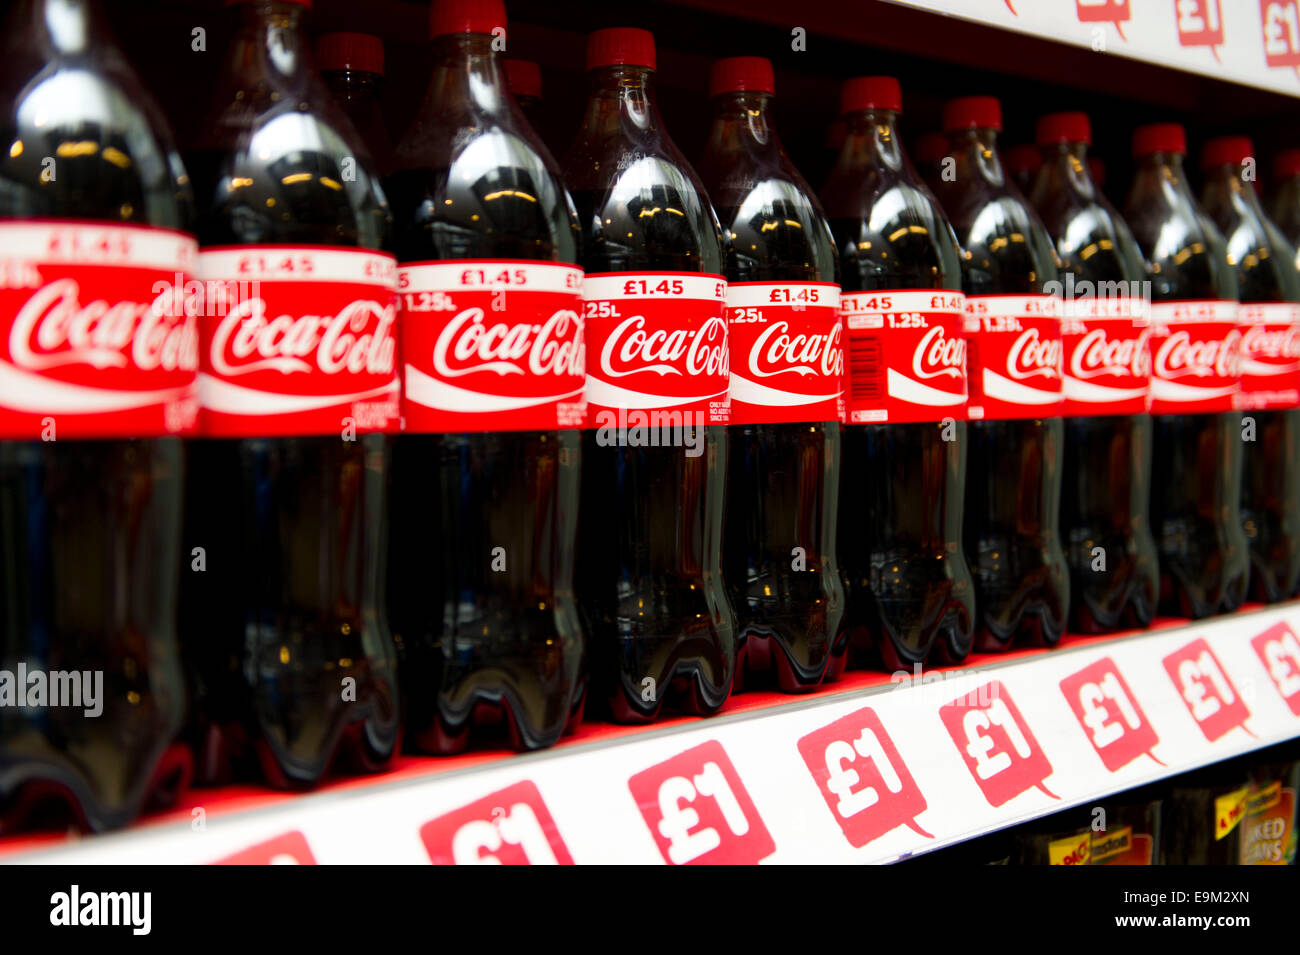 Coca Cola on sale on a supermarket shelf. Doctors have warned fizzy drinks can lead to tooth decay and diabetes - Stock Image